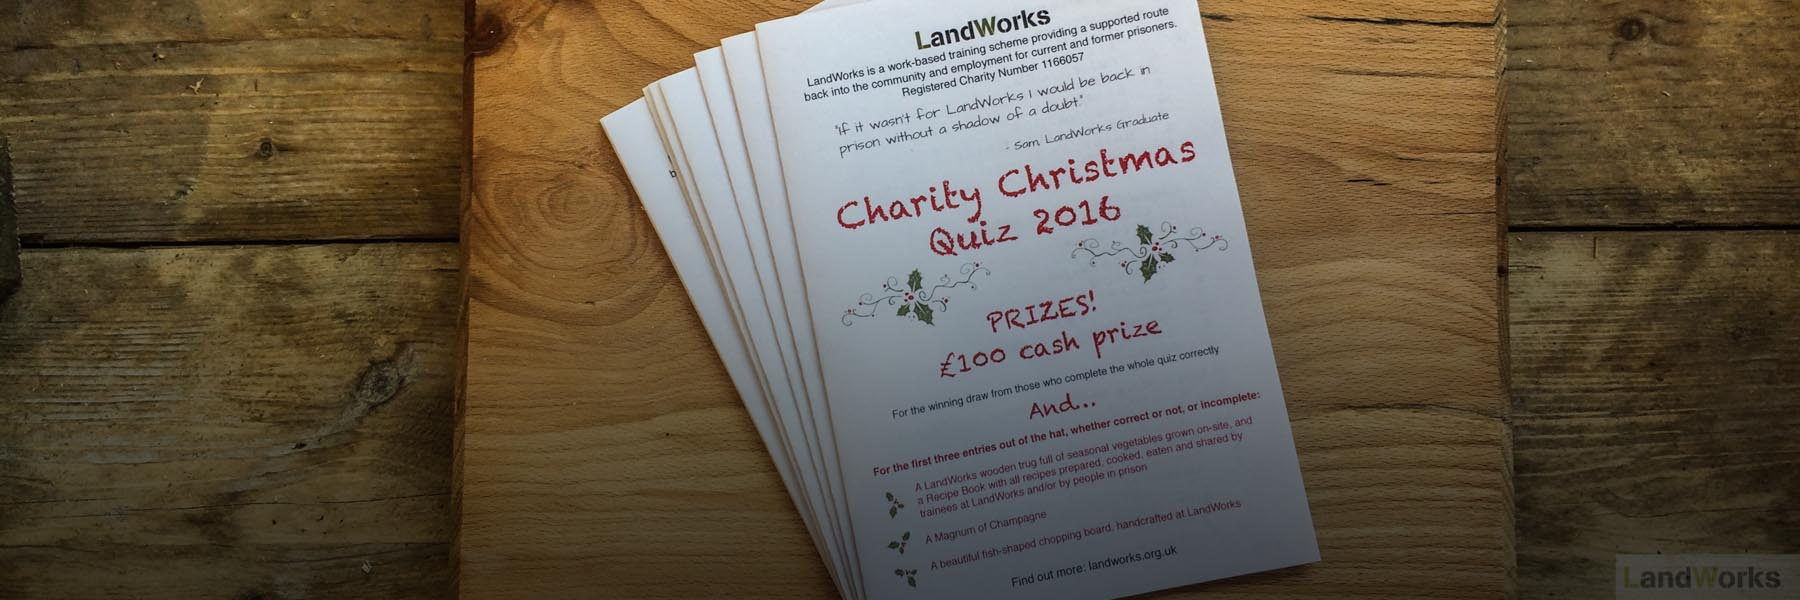 LandWorks Charity Christmas Quiz Puzzle